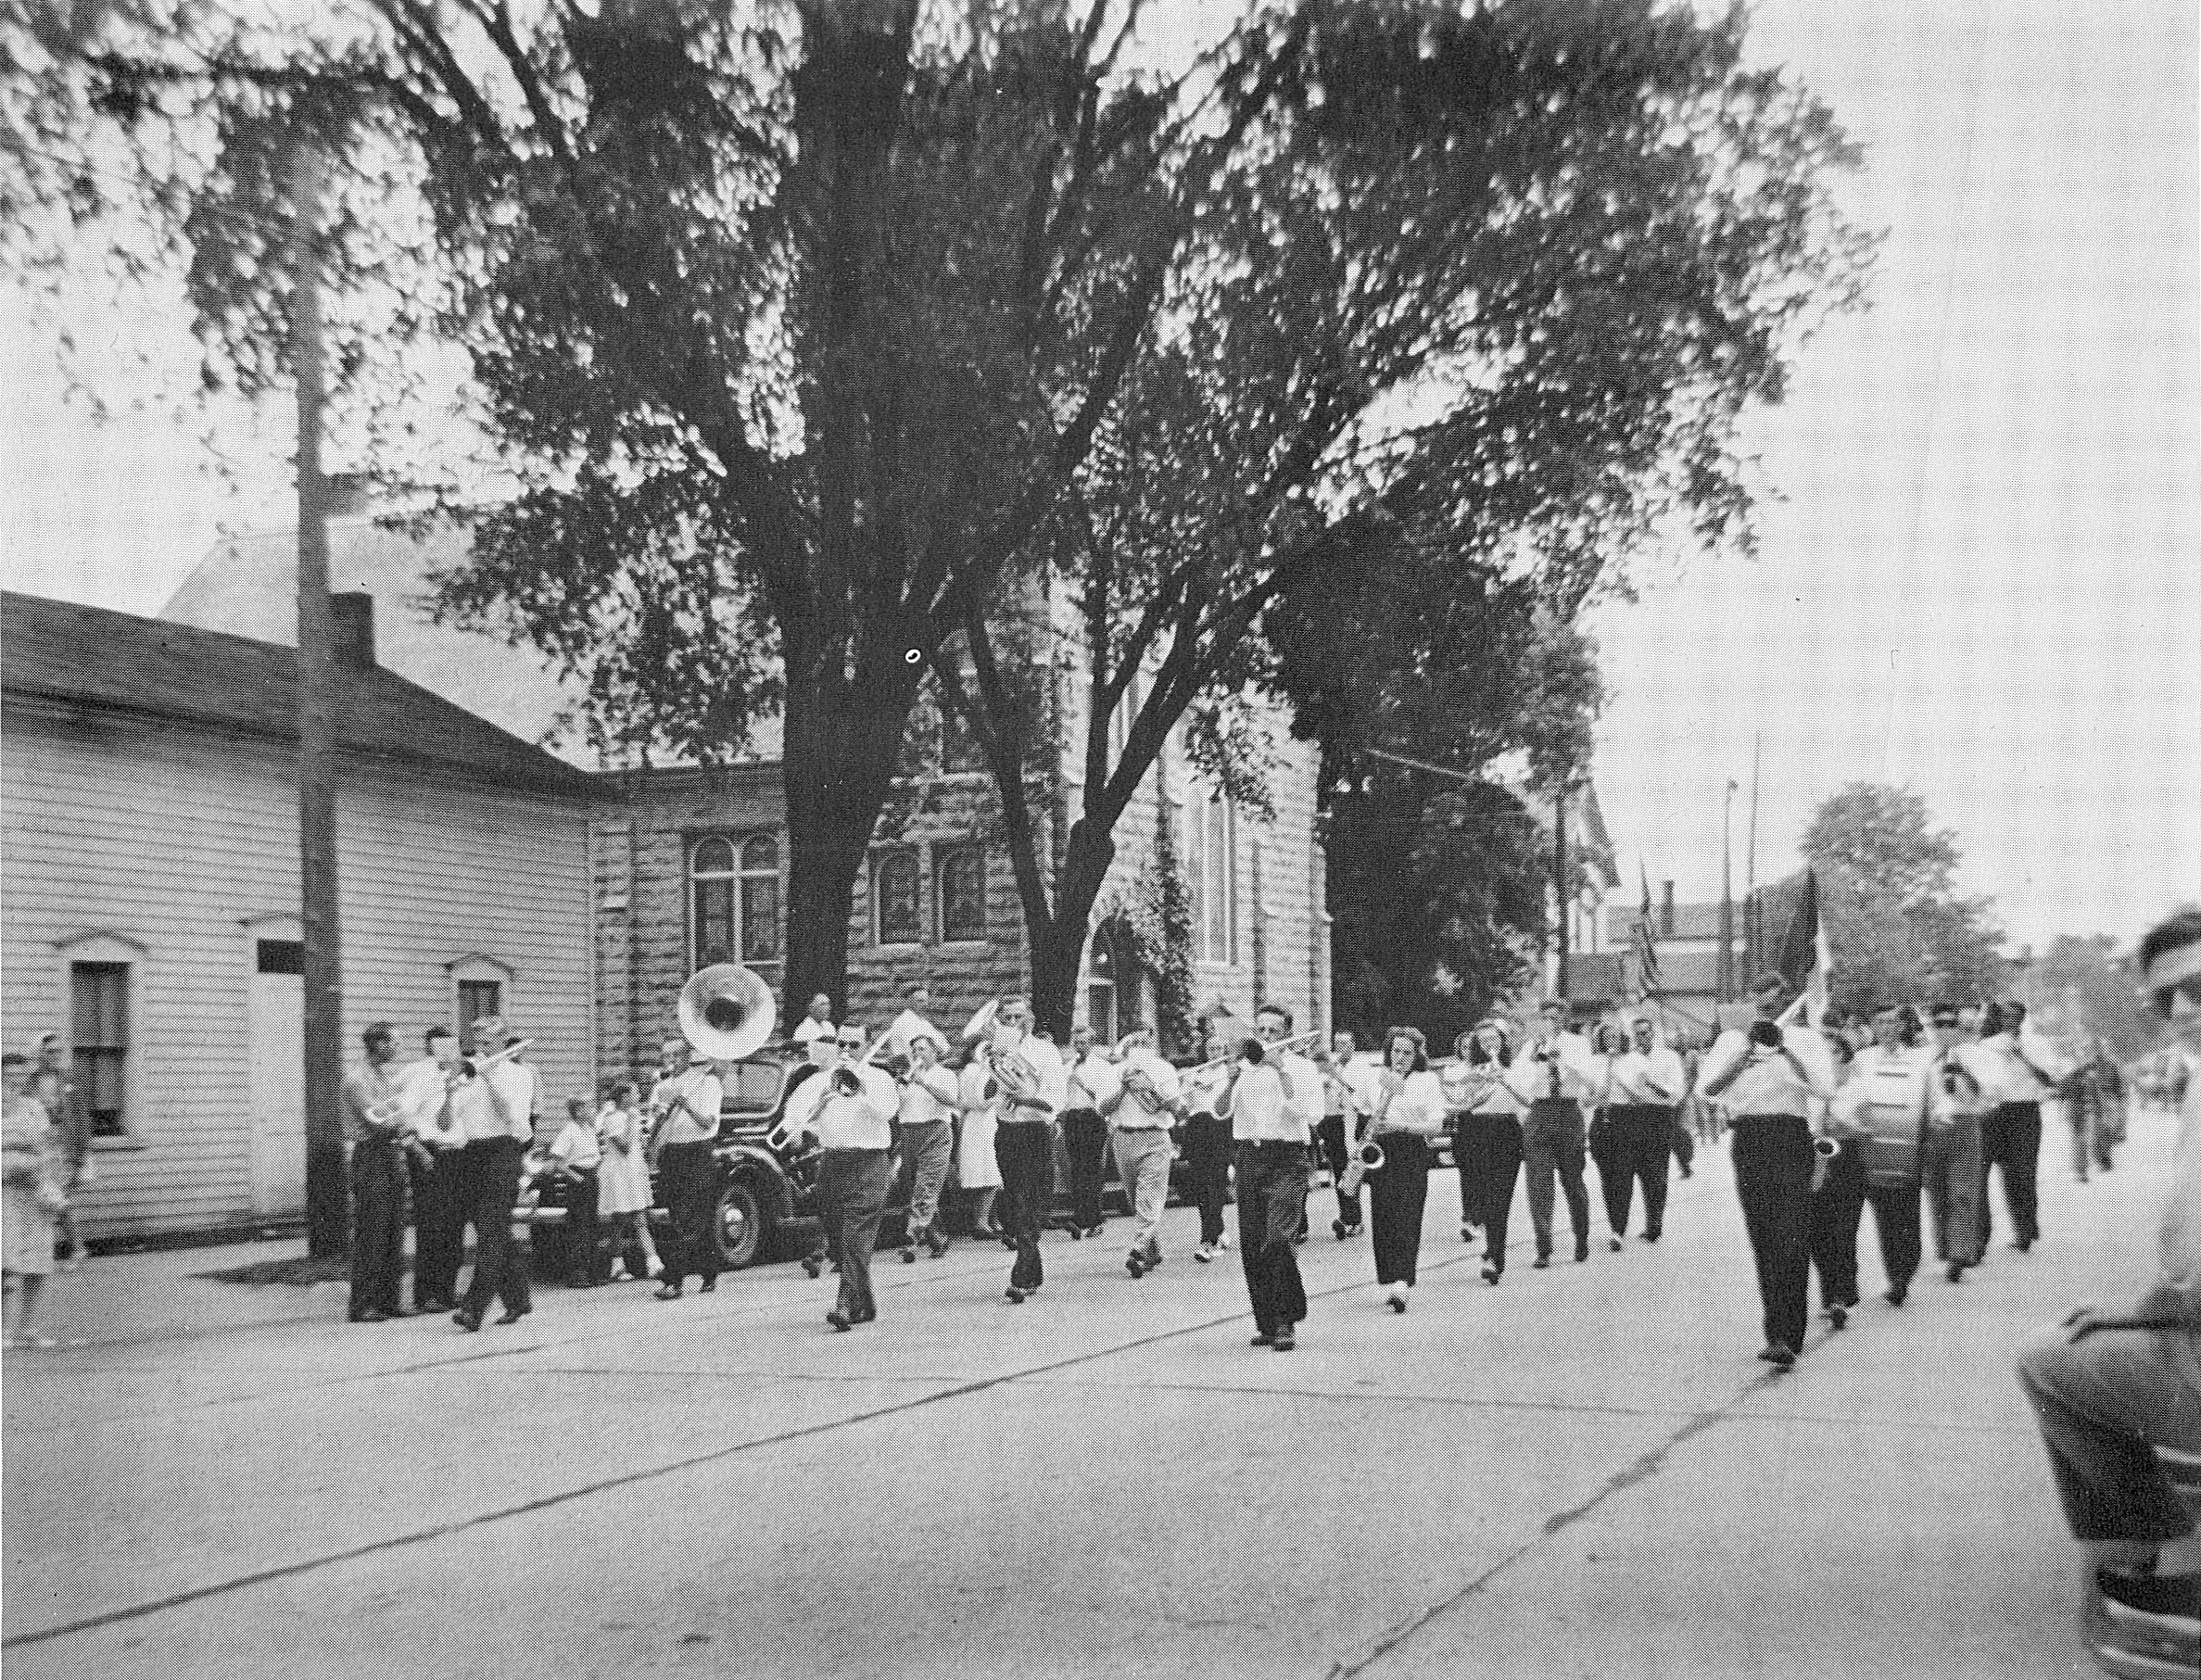 School band marching in a parade wearing conventional clothes.